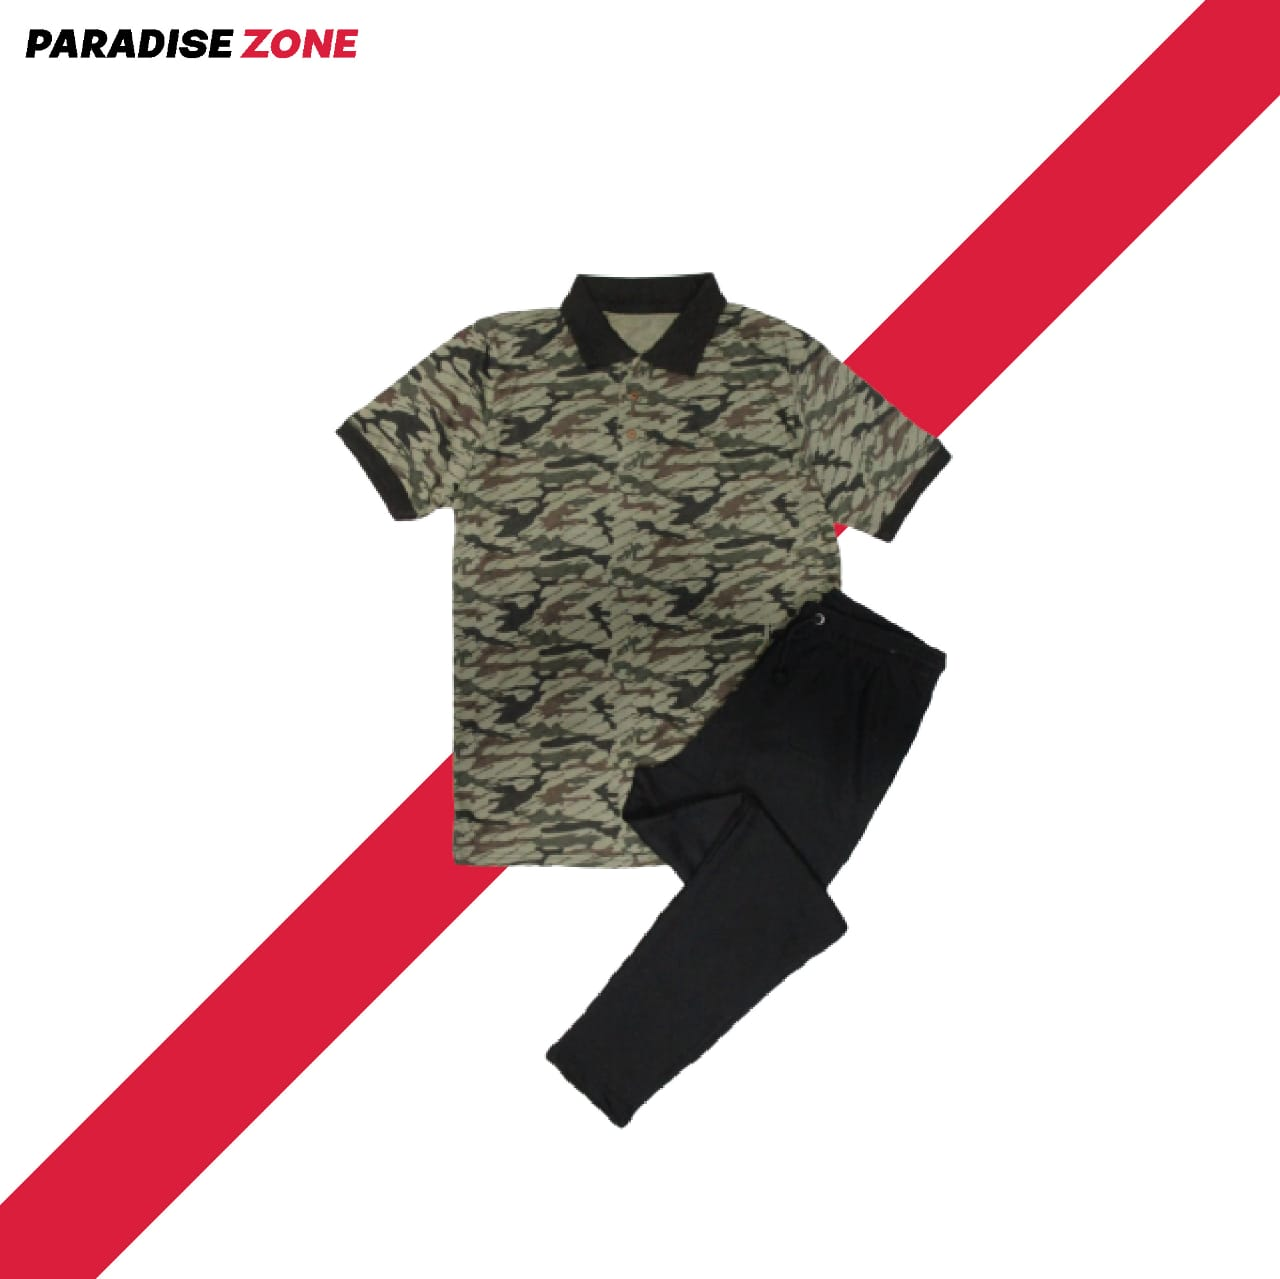 New Arrival Summer Tees Jogging Pants For Men's Wear Casual T-shirt And Trouser